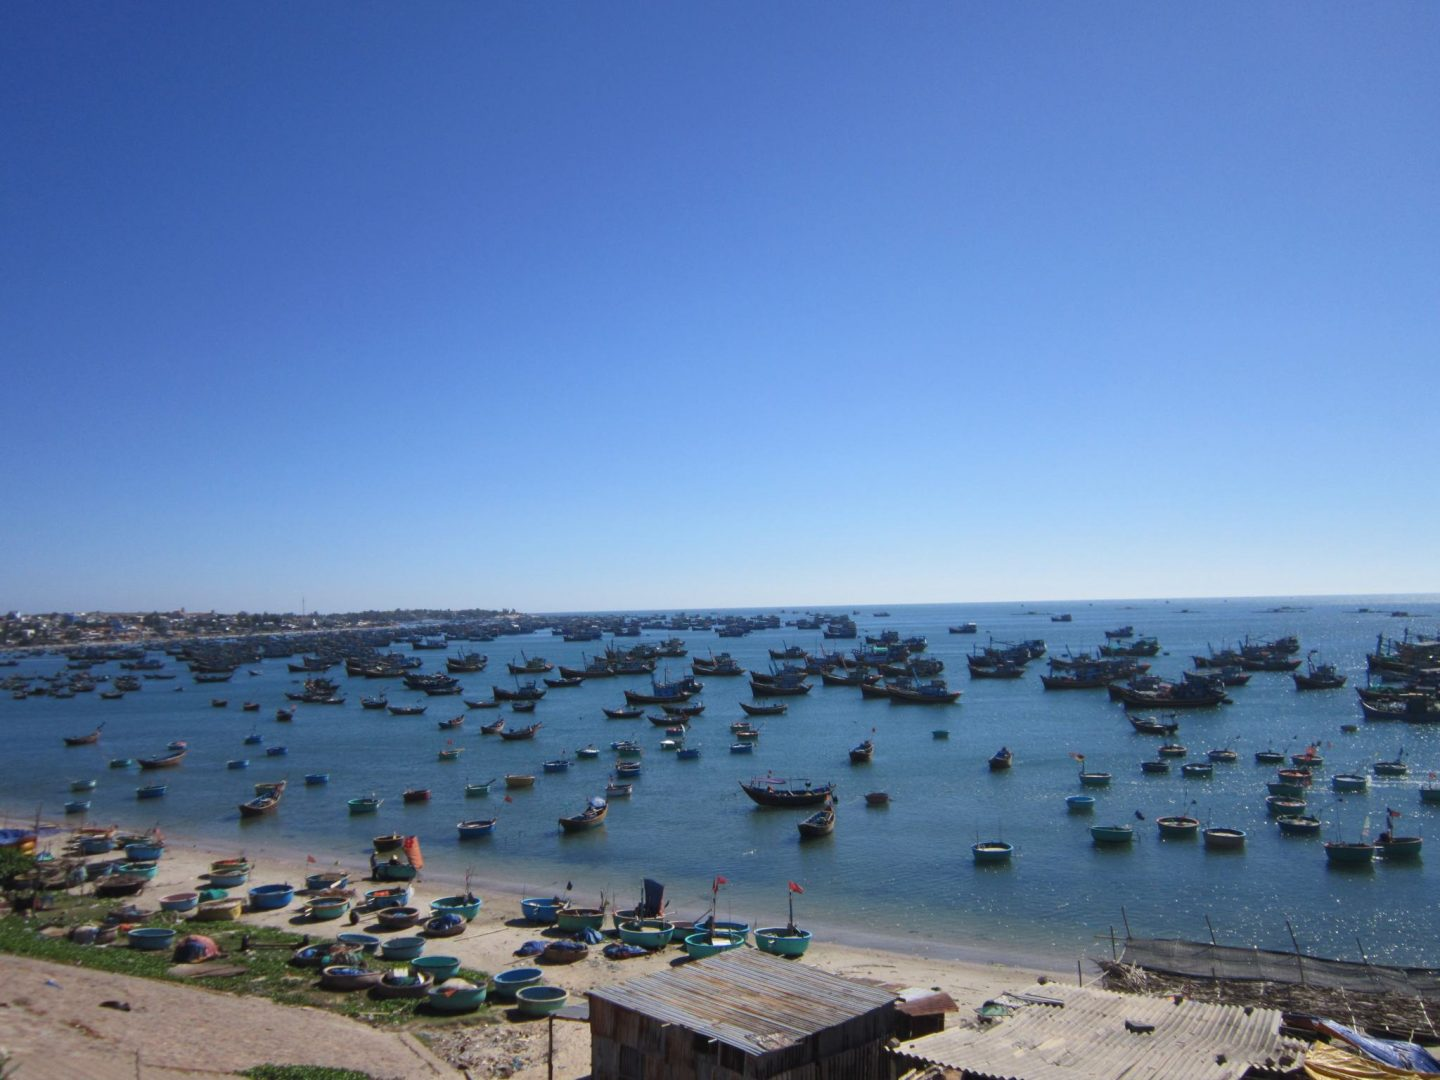 The Fishing Village, Mũi Né